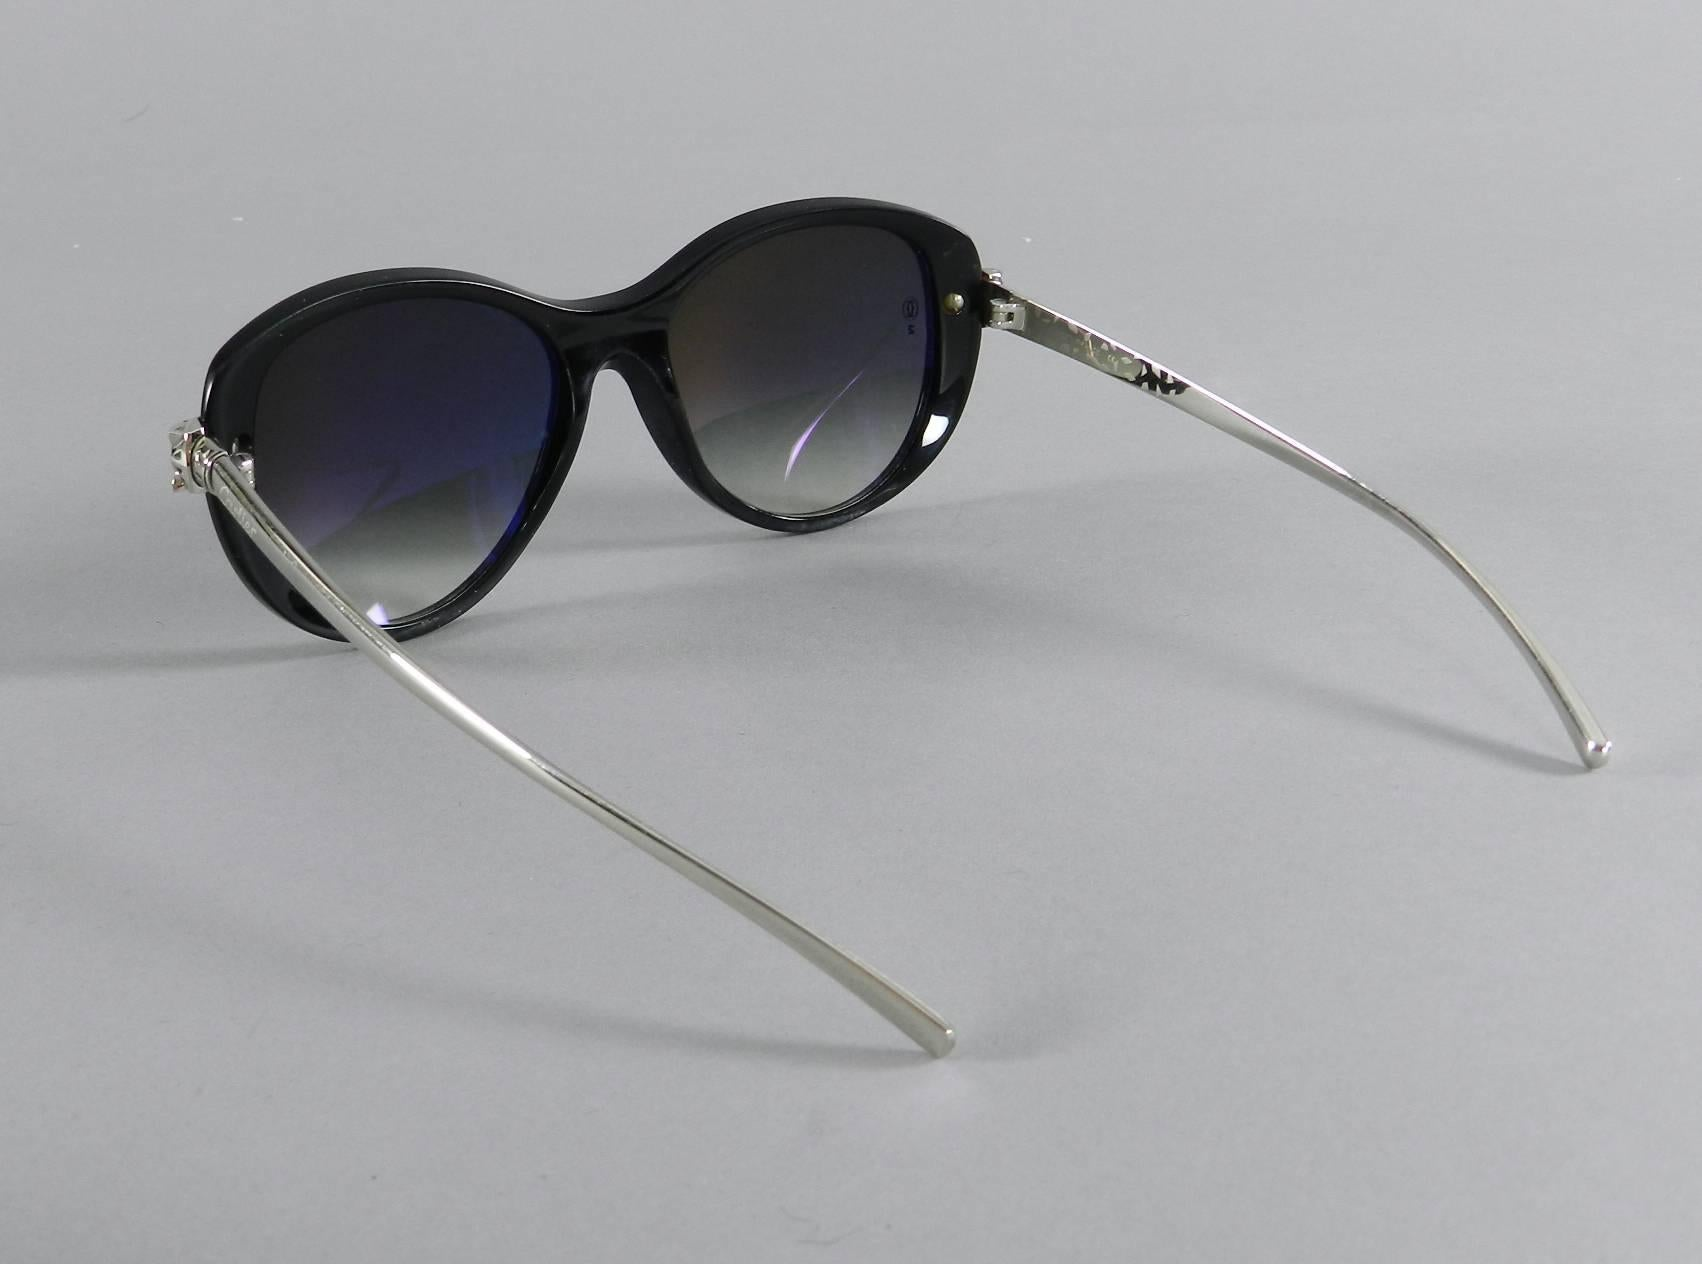 59e0c79a2a Cartier Panthere Wild Collection Black Sunglasses at 1stdibs